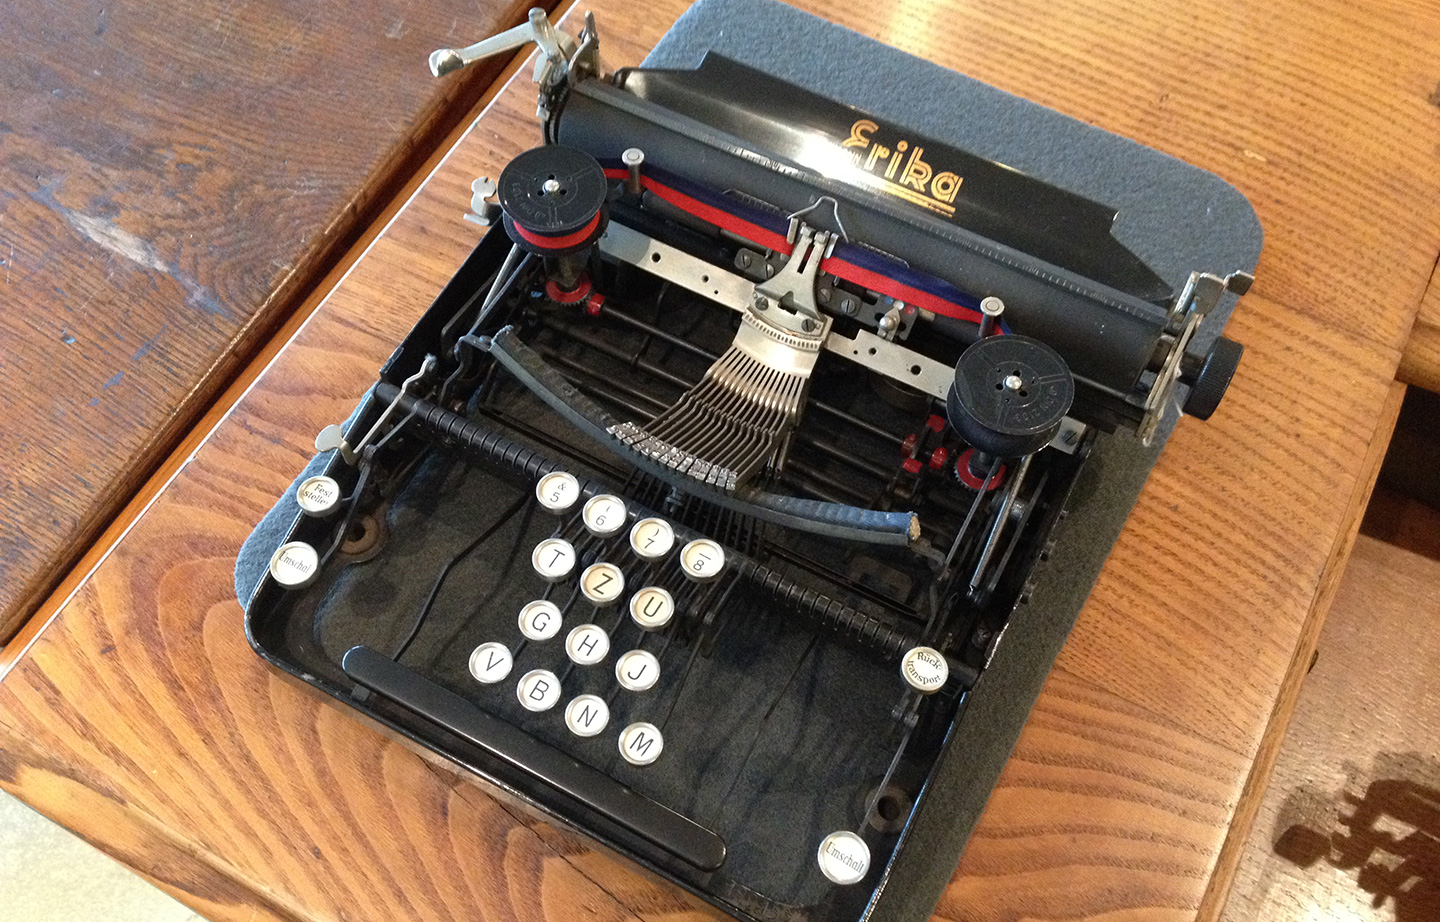 Picture of a Erika testing typewriter